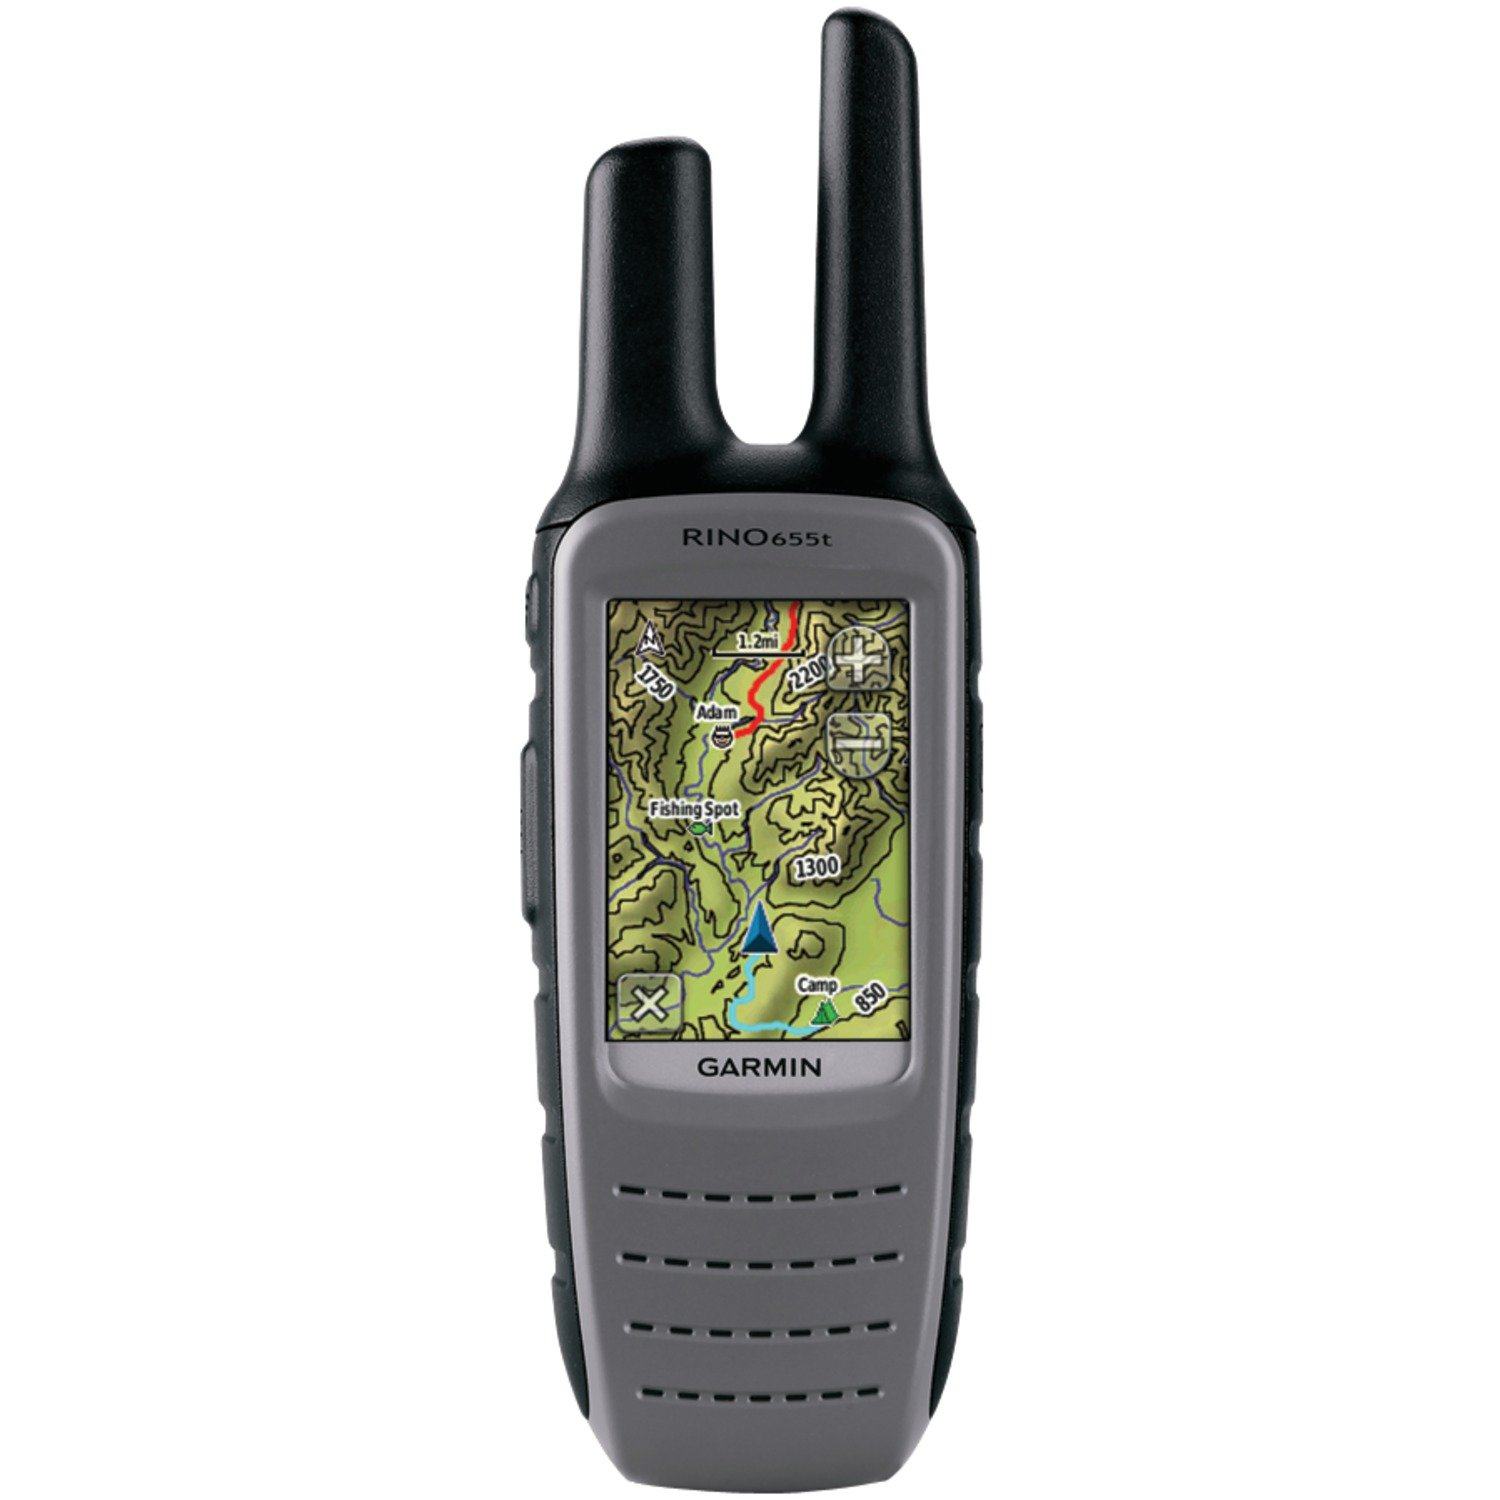 Sale Best Price Garmin Rino 655t US